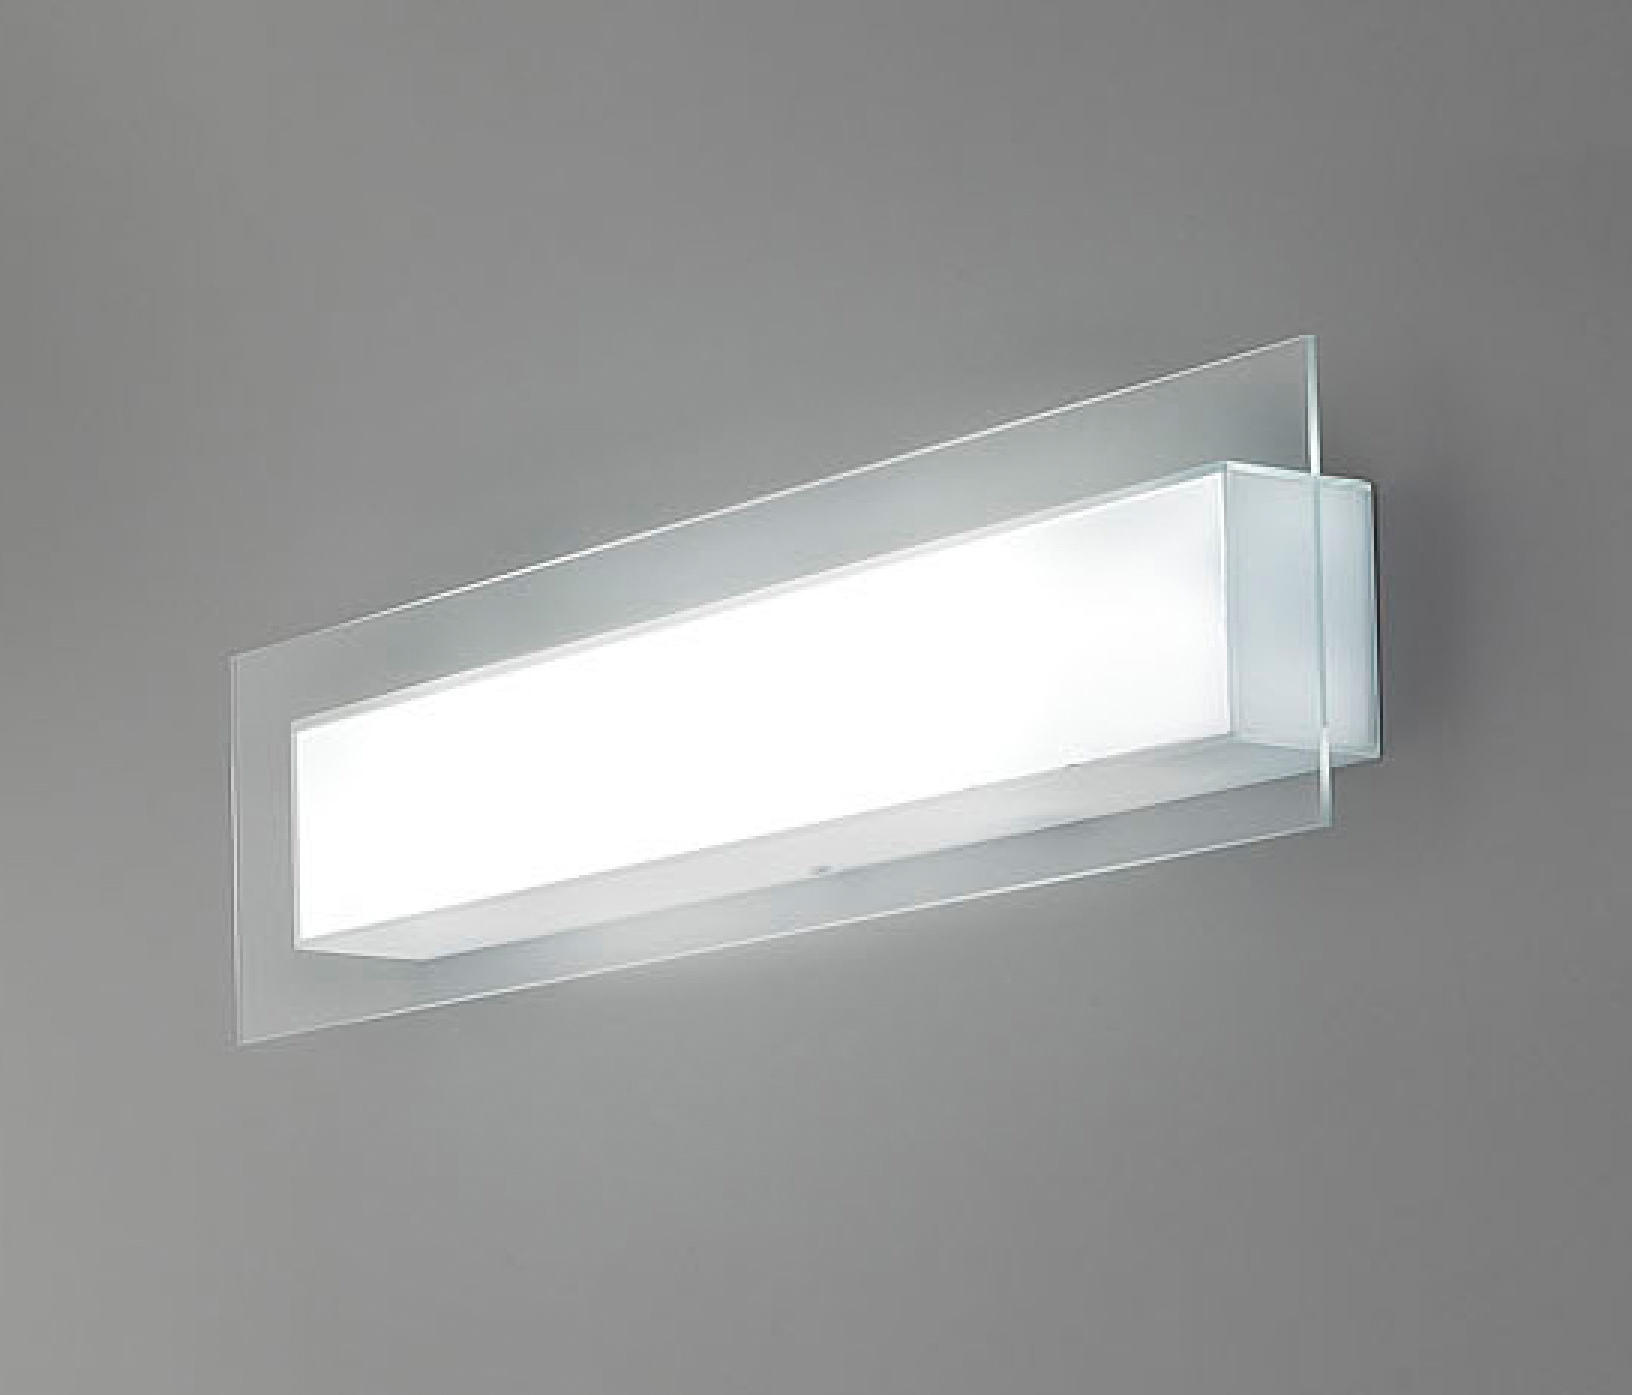 Square wall lamp wall lights from la rfrence architonic square wall lamp by la rfrence wall lights aloadofball Image collections